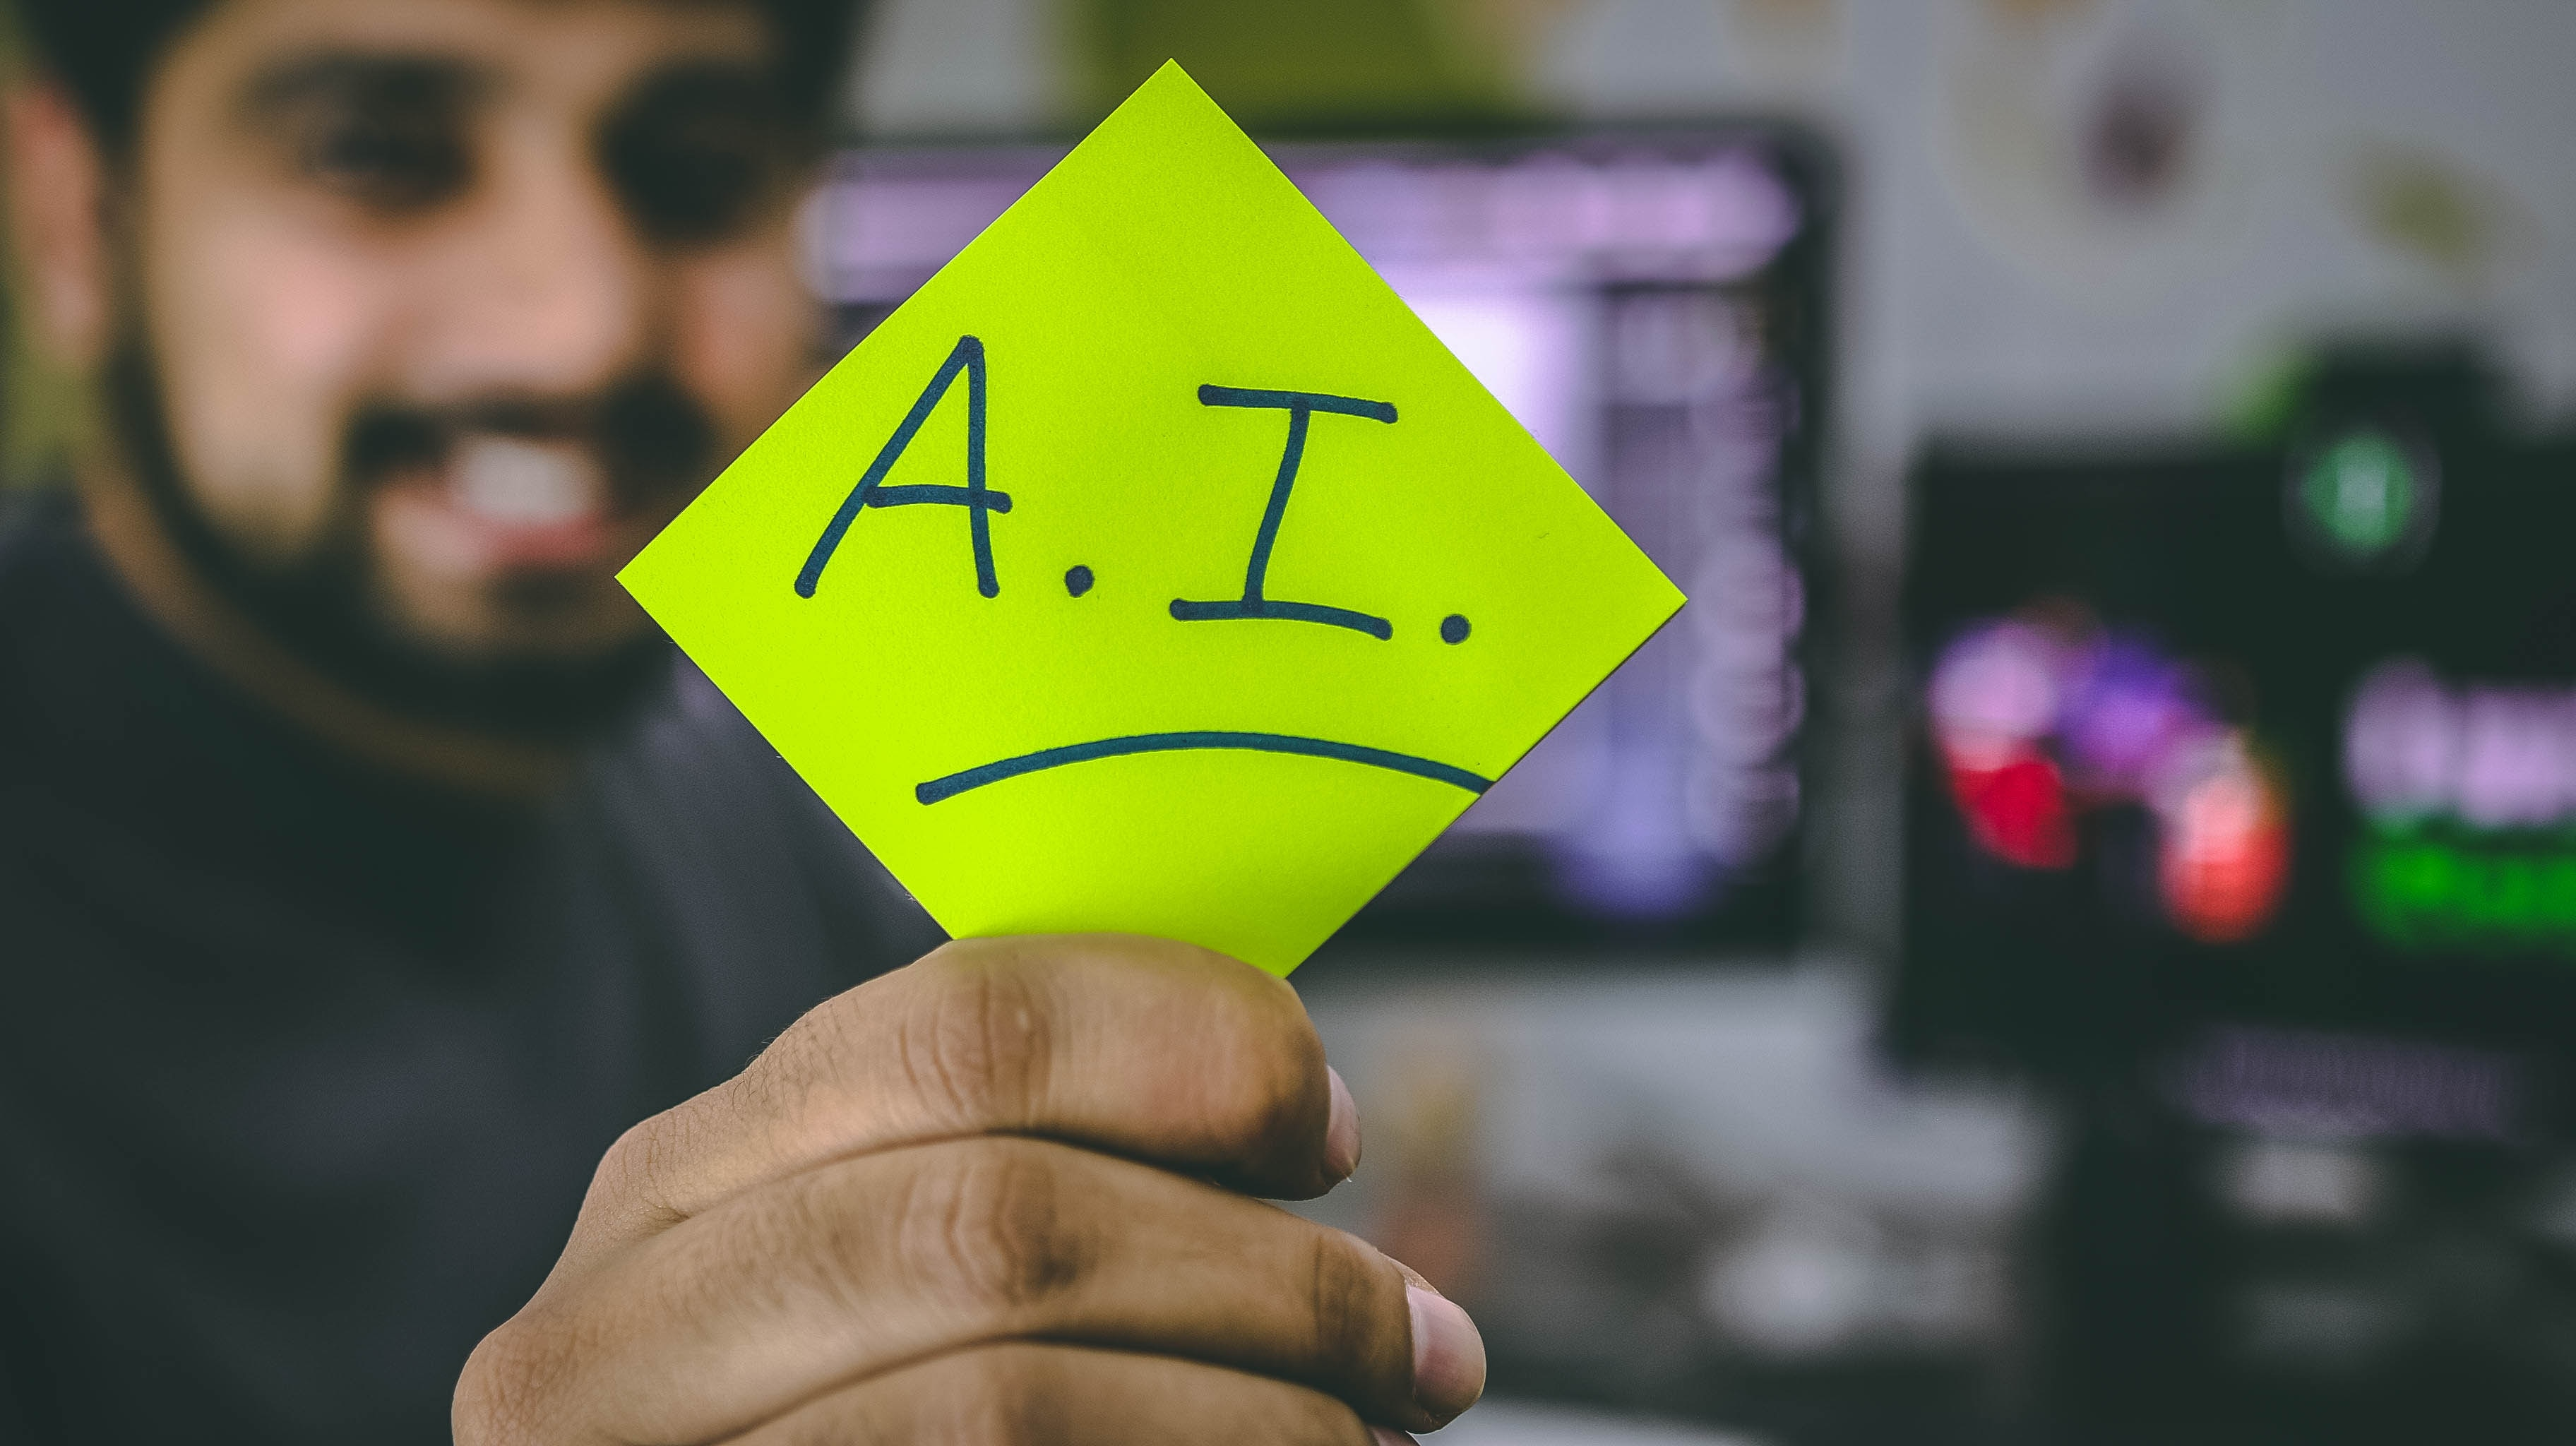 , AI in the Palm of Your Hand